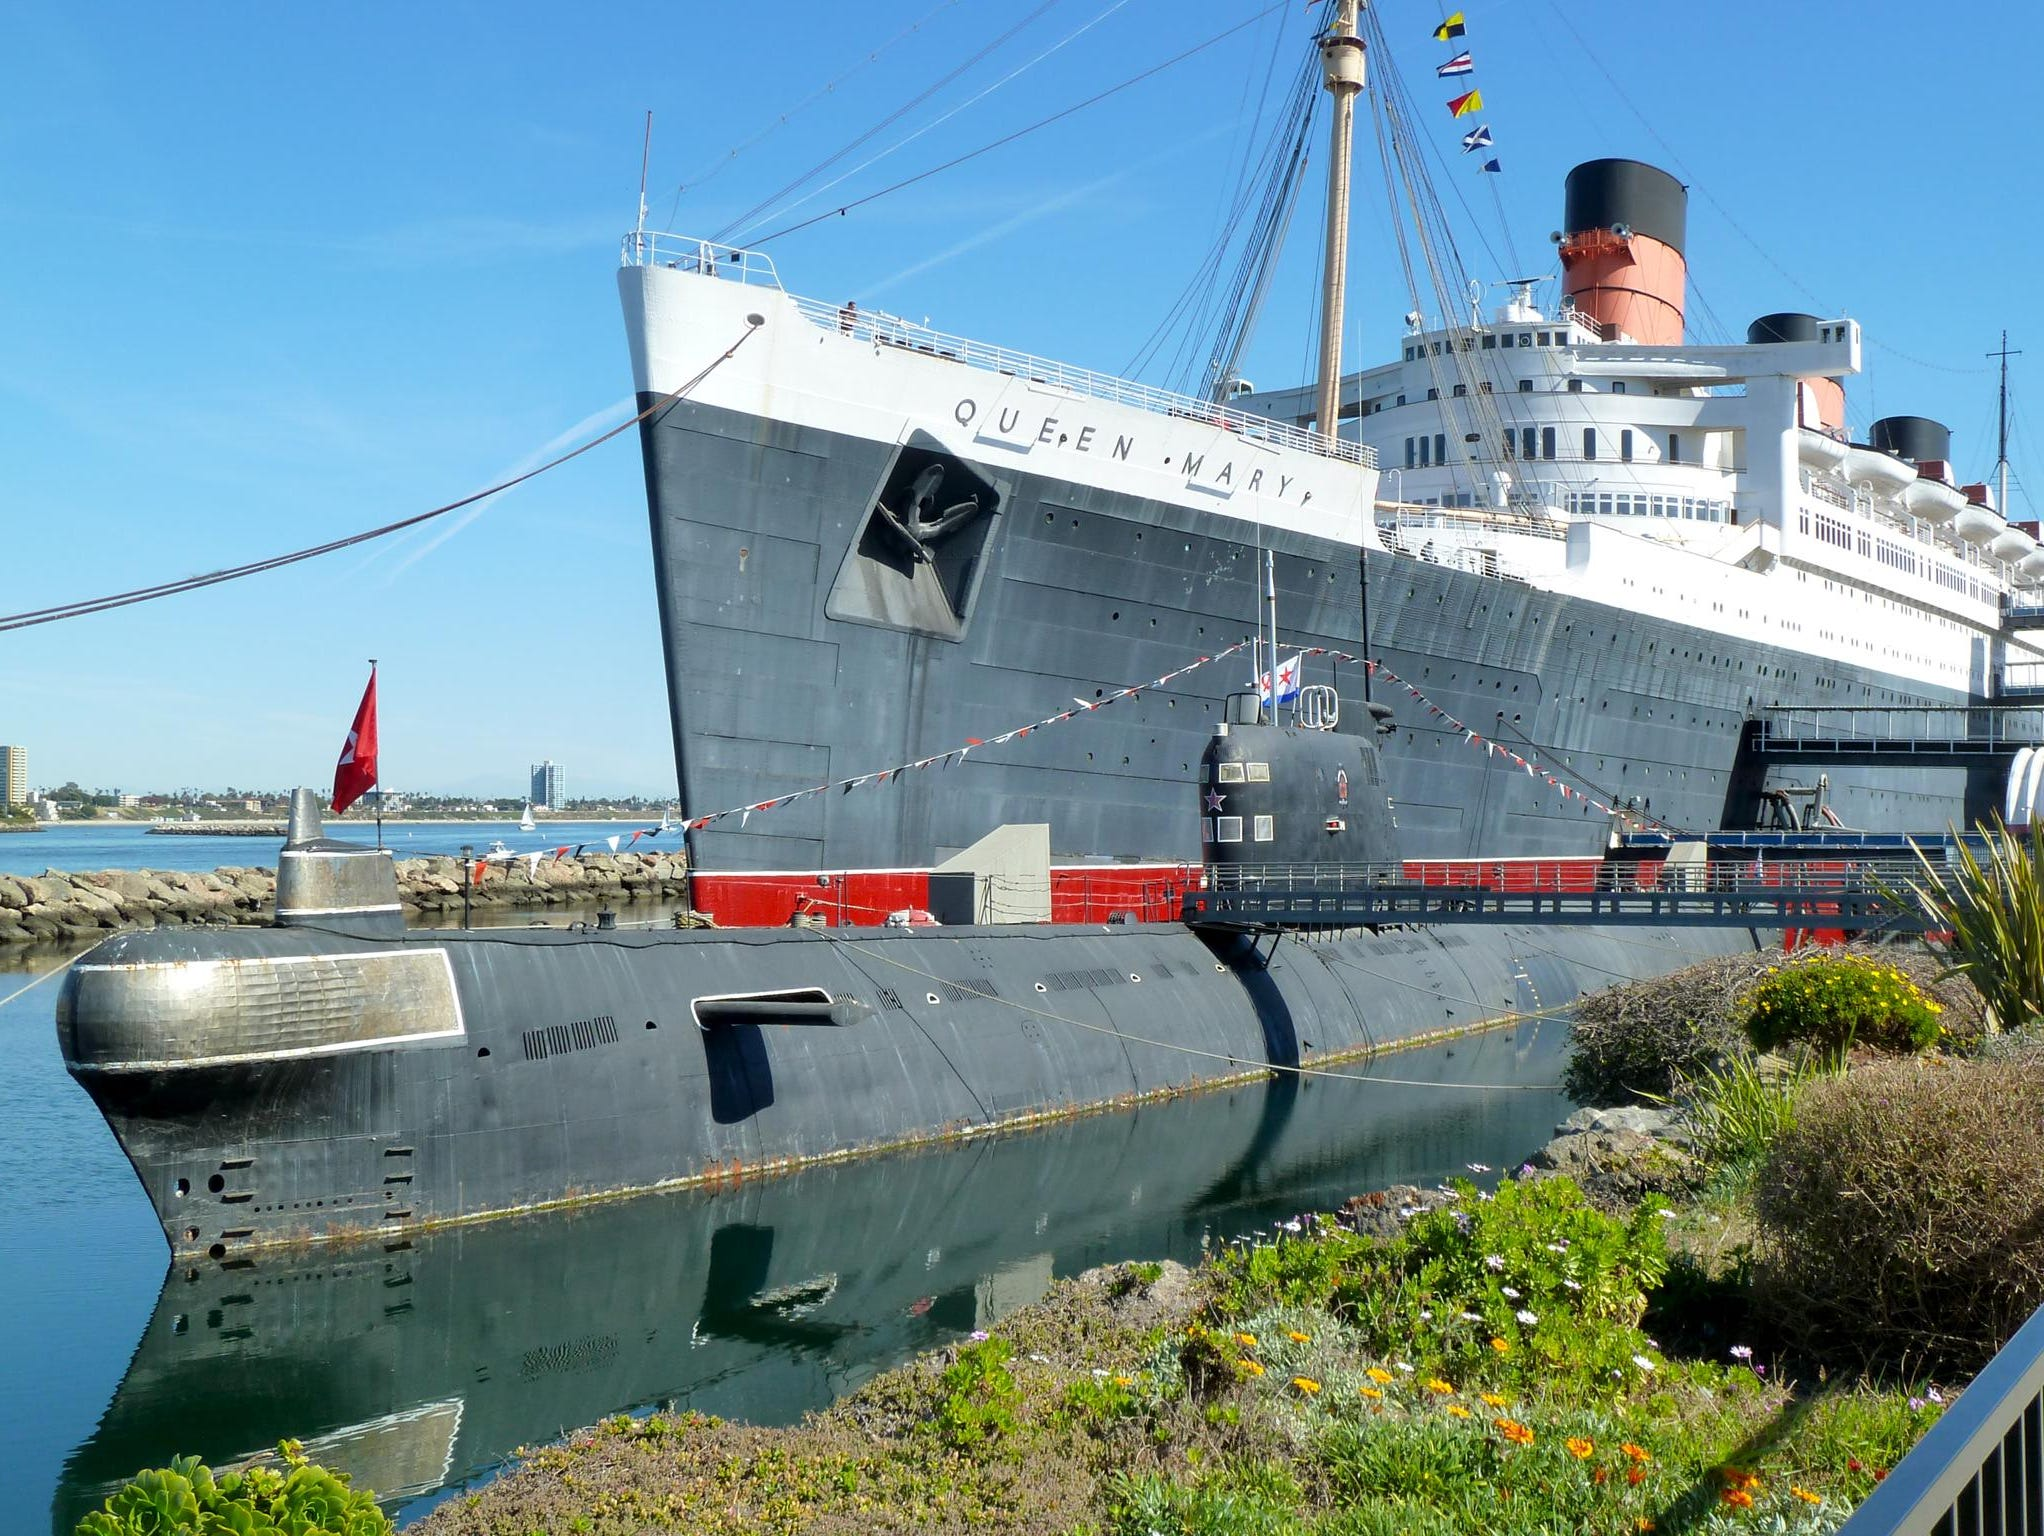 Now classified as a building, the Queen Mary was added to the National Register of Historic Places in 1993. The 1972-built Soviet submarine 'Scorpion' joined the Queen Mary as a side attraction in 1998.